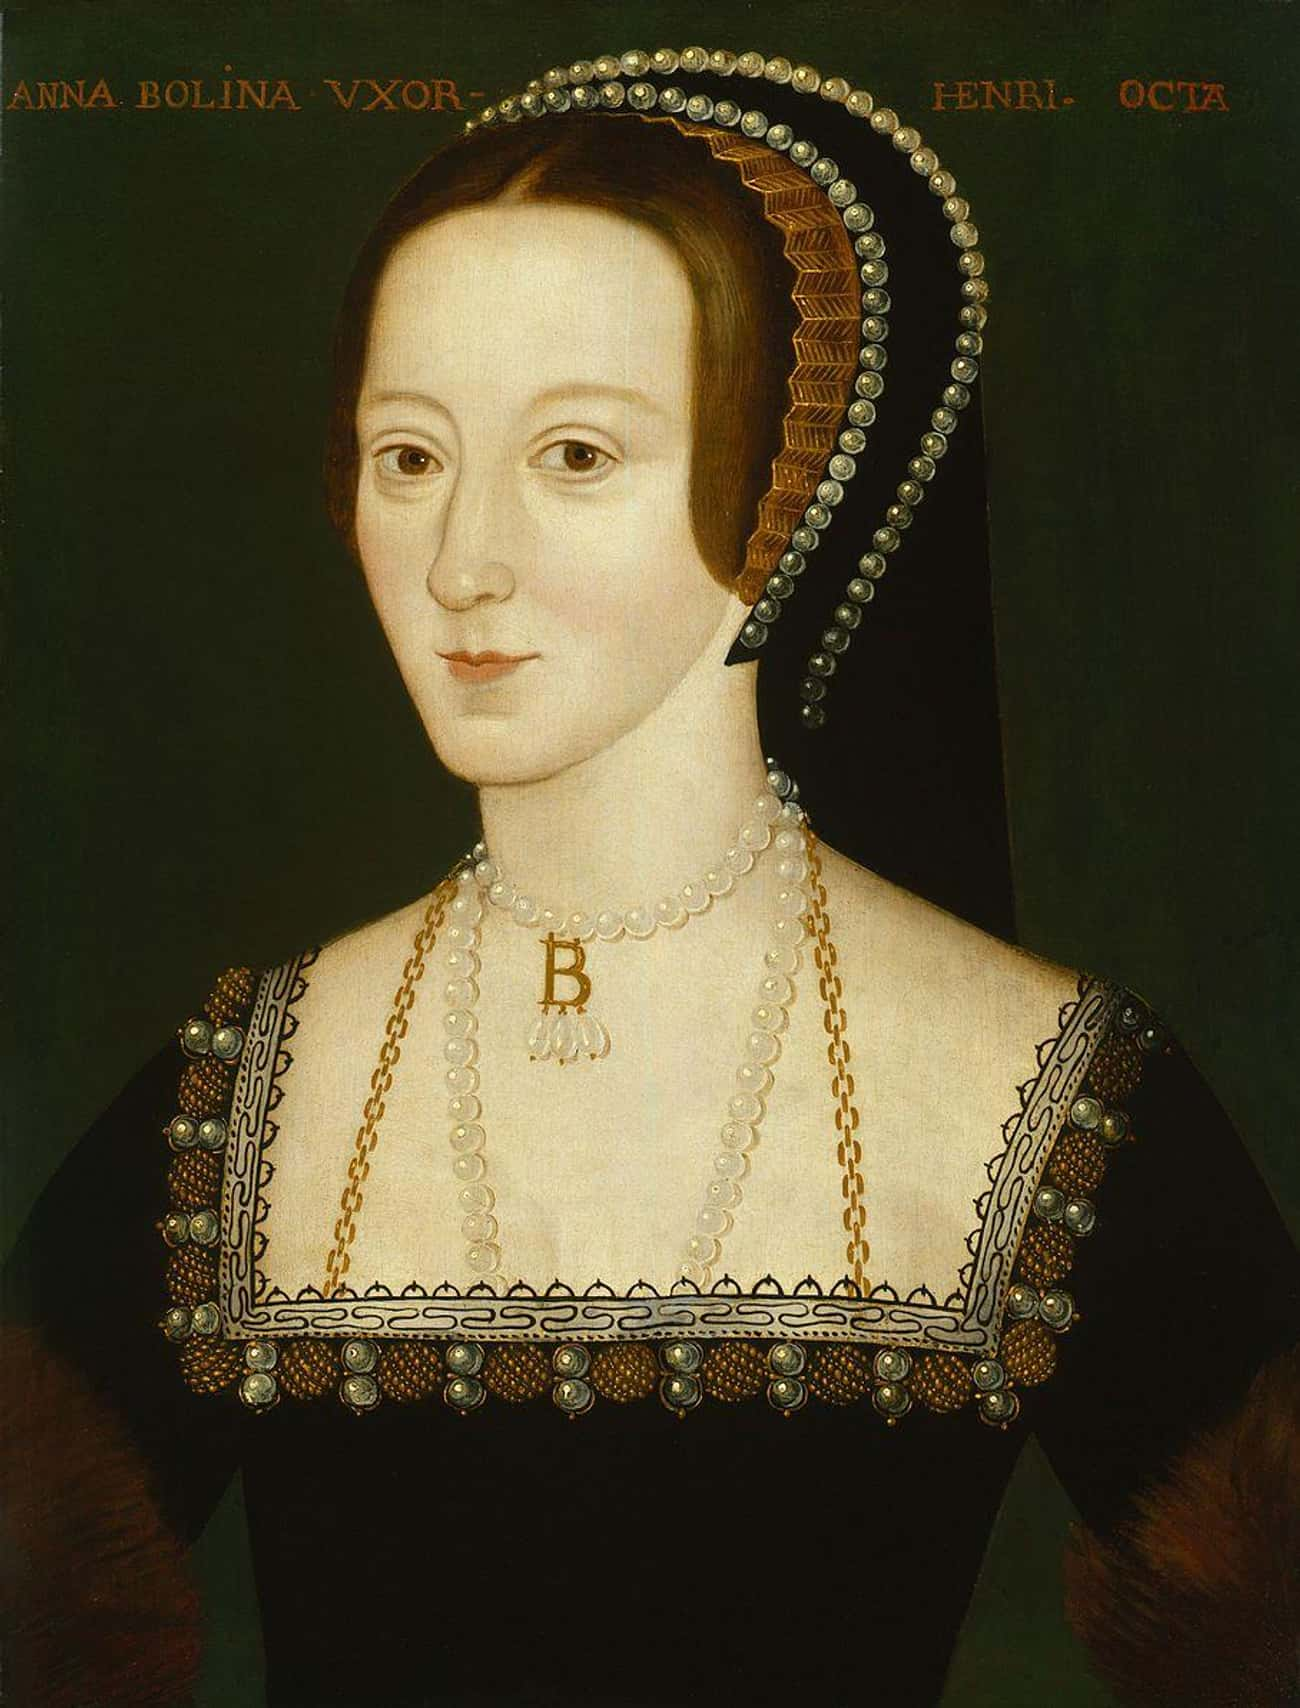 Anne Boleyn Was Left In An Unm is listed (or ranked) 4 on the list 16 Famous Bodies From History Found In Inconspicuous Places